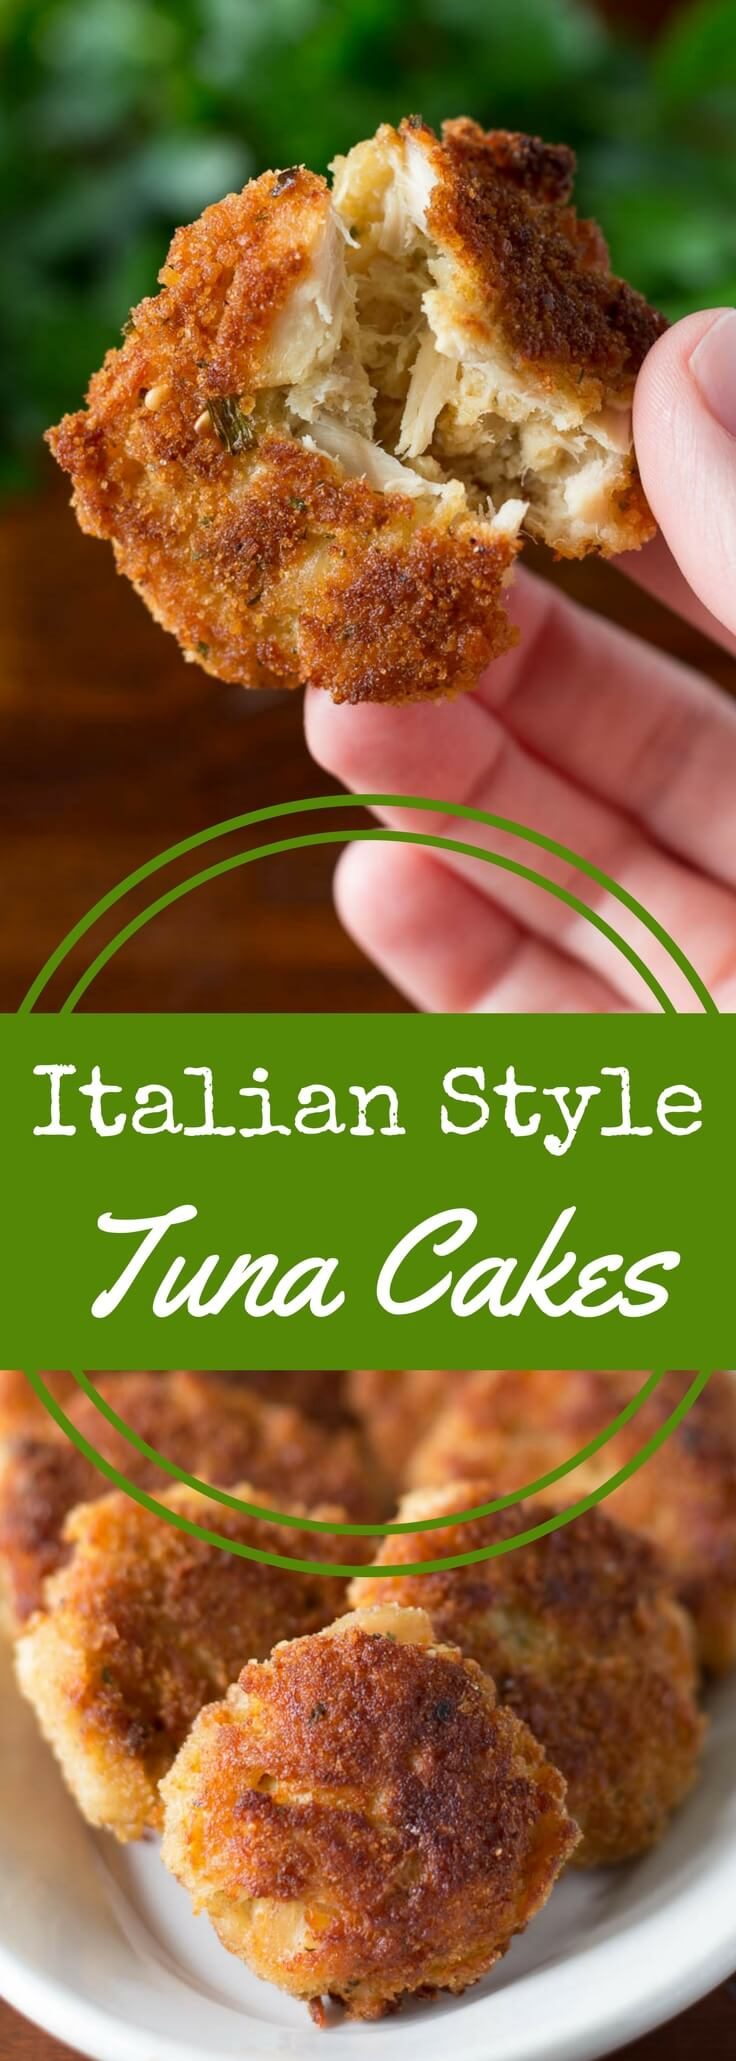 Crispy, crunchy tuna cakes made with albacore tuna are perfectly easy and made with just four ingredients!  This recipe is great for appetizers or dinner.